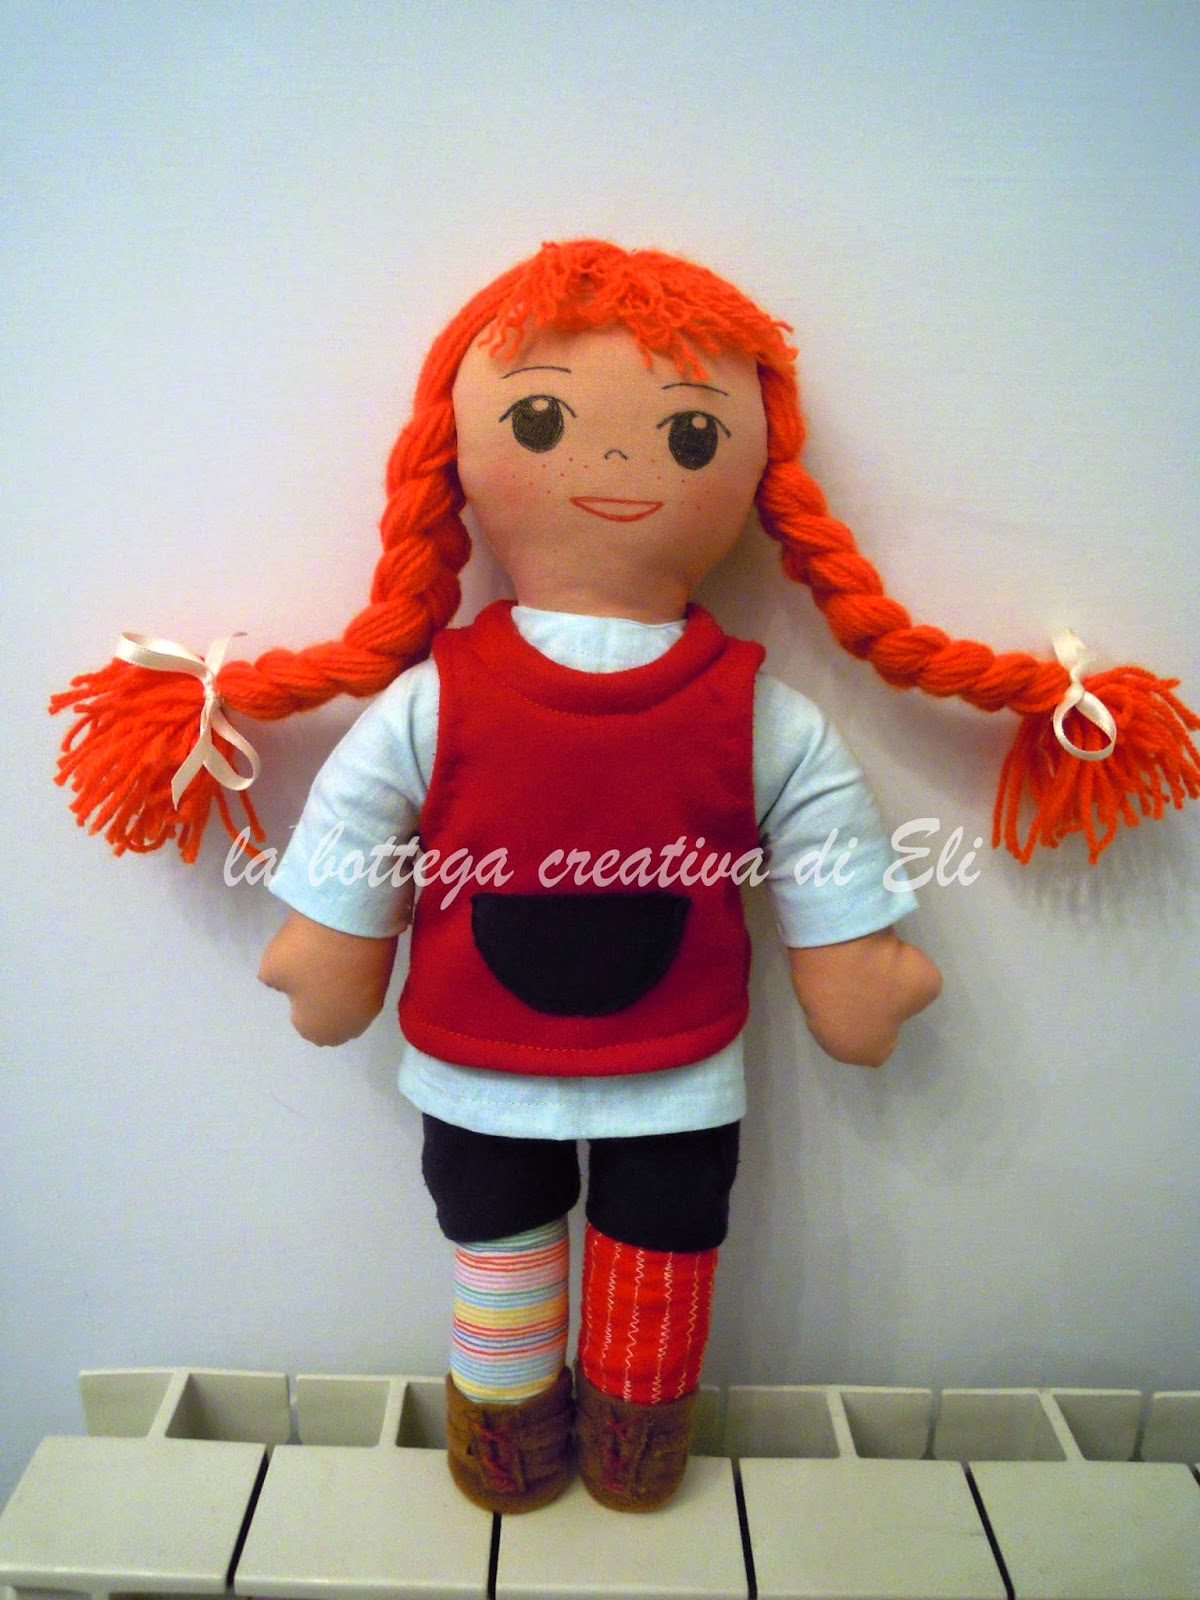 http://labottegacreativadieli.blogspot.it/2014/05/bambola-di-pezza-pippi-calzelunghe-.html